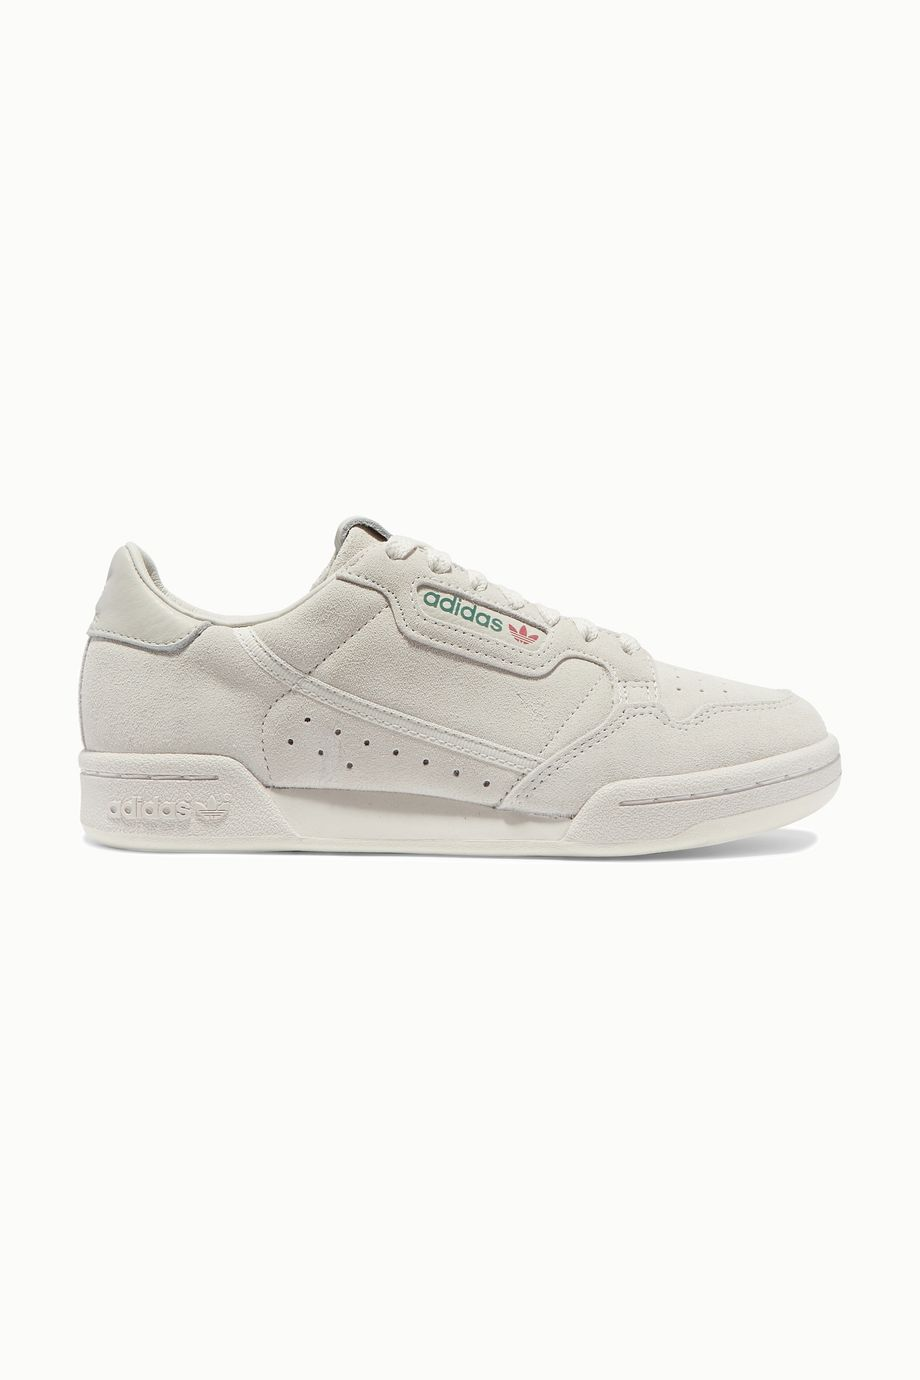 adidas Originals Continental 80 leather-trimmed suede sneakers